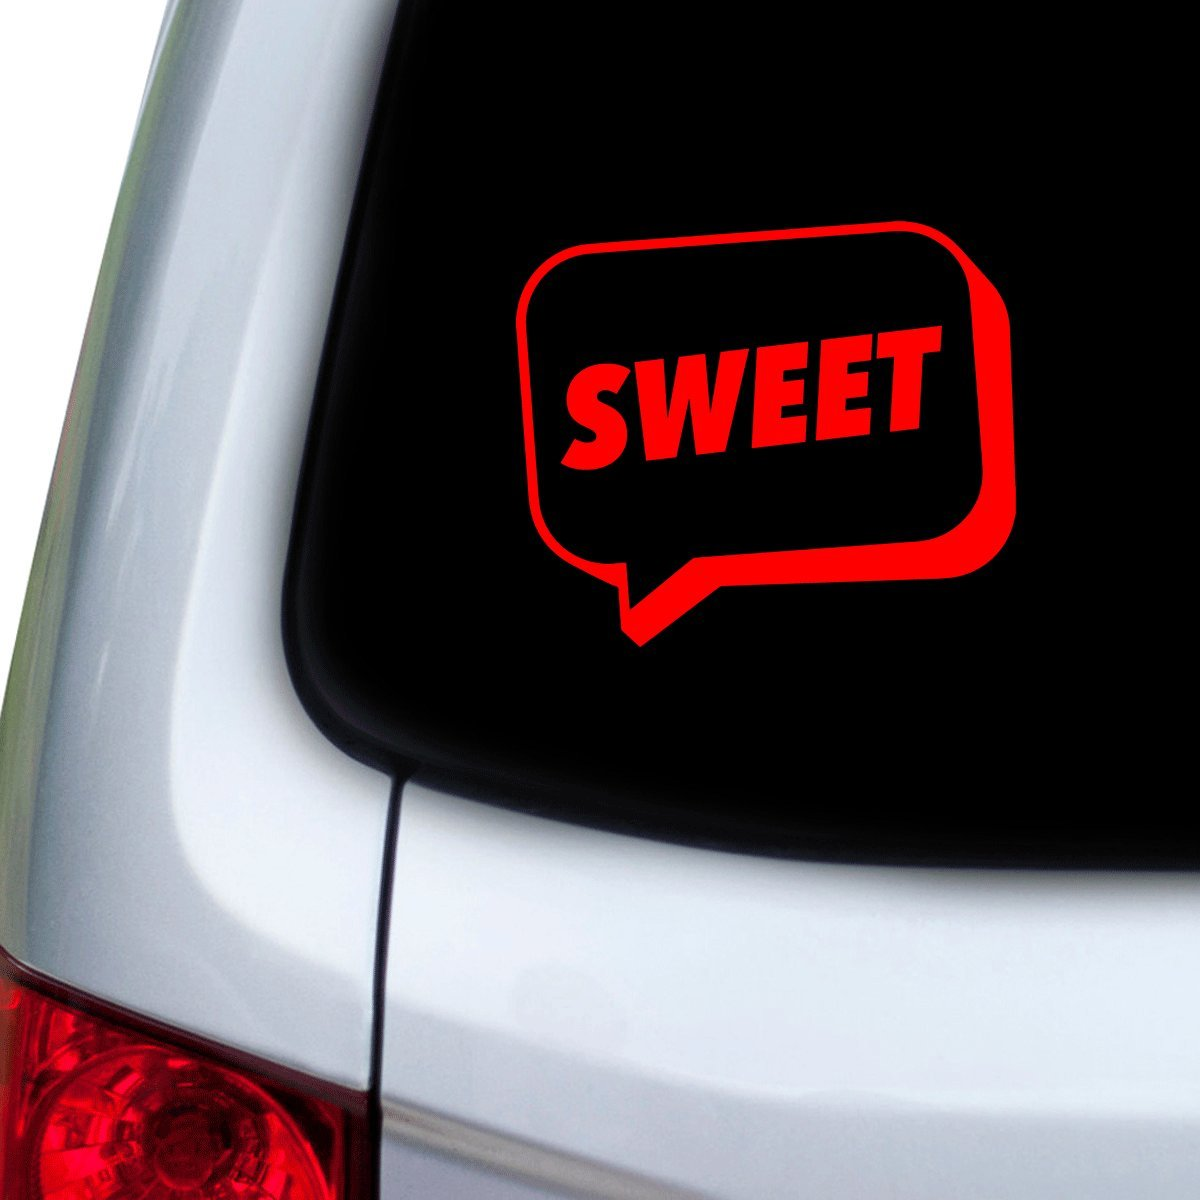 StickAny Car and Auto Decal Series Sweet Speech Bubble Sticker for Windows Doors Red Hoods